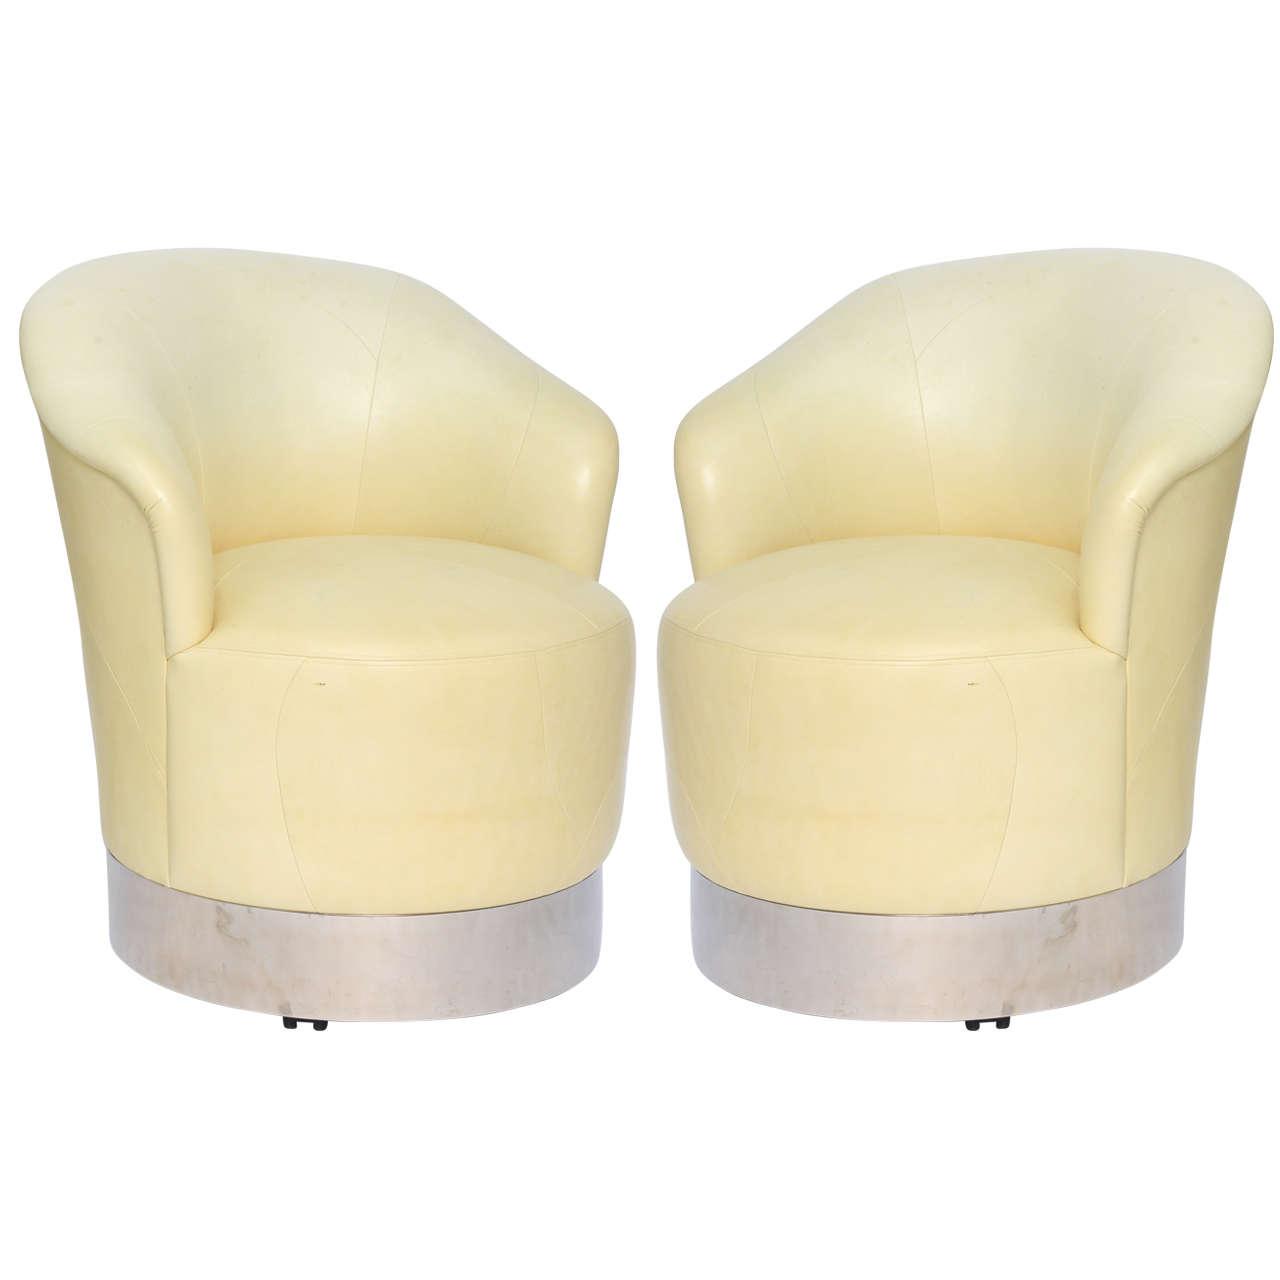 Pair of Sally Sirkin Lewis Lambskin Marina Swivel Chairs on Casters